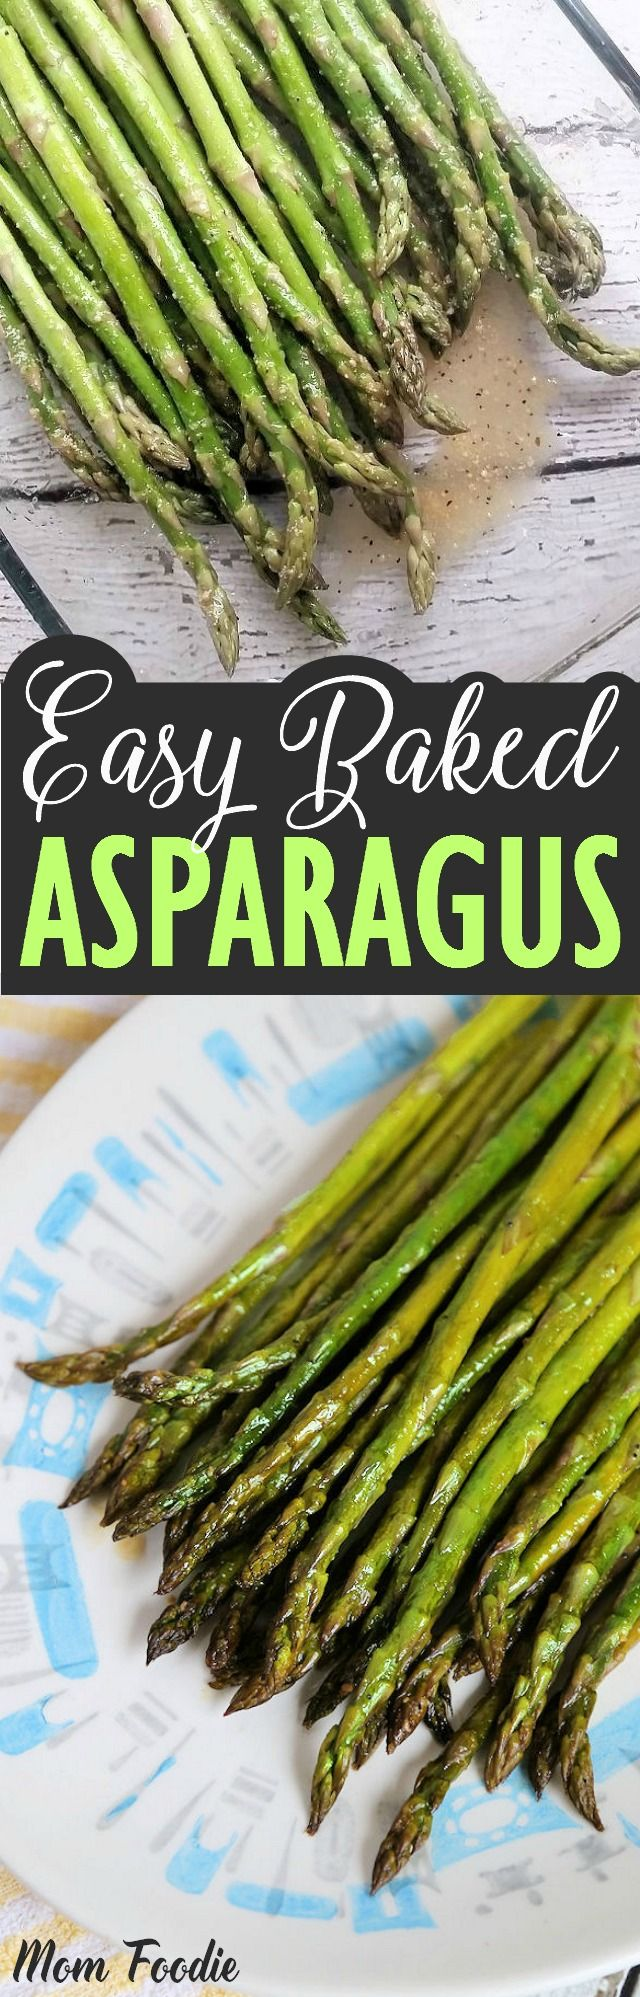 Cooking asparagus doesn't get much more simple than this easy Baked Asparagus Recipe. It is a favorite of my daughter and I.